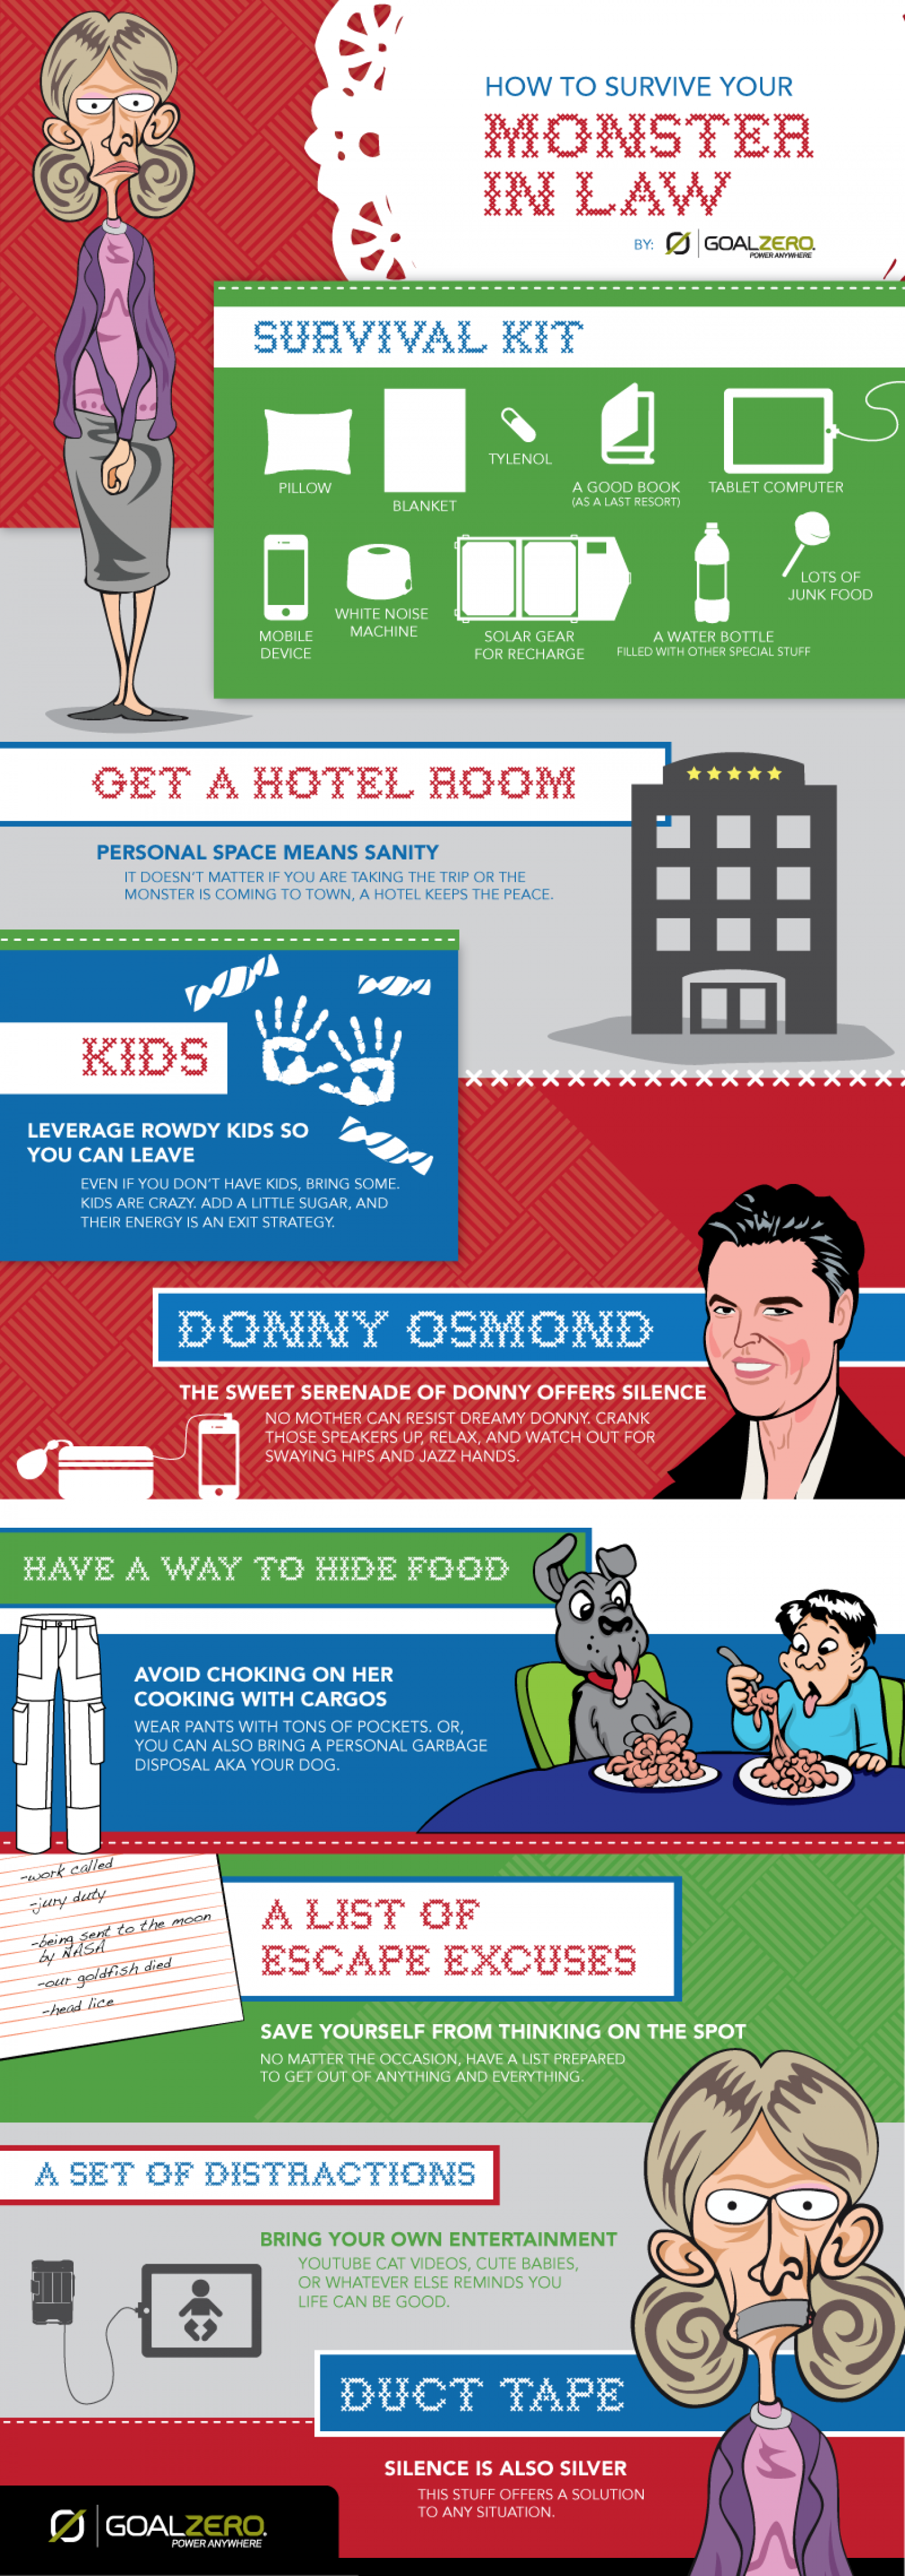 How to Survive Your Monster-In-Law Infographic